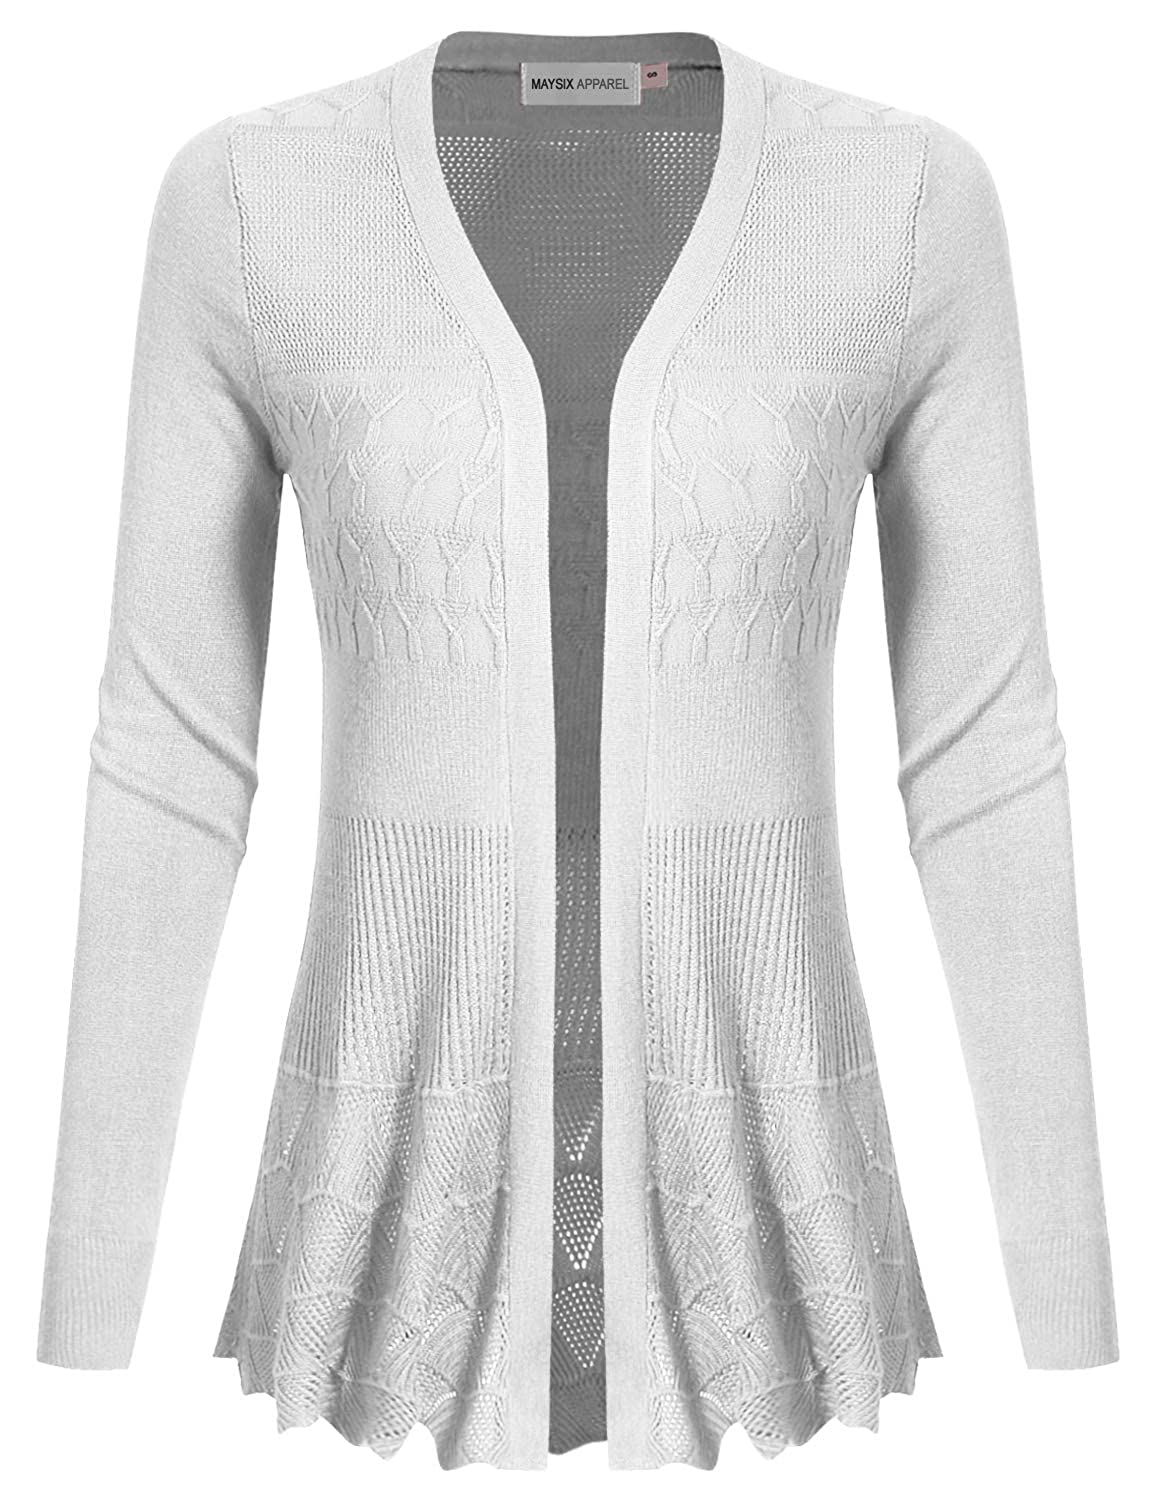 Msg5white MAYSIX APPAREL Long Sleeve Lightweight Crochet Knit Sweater Open Front Cardigan for Women (S2XL)